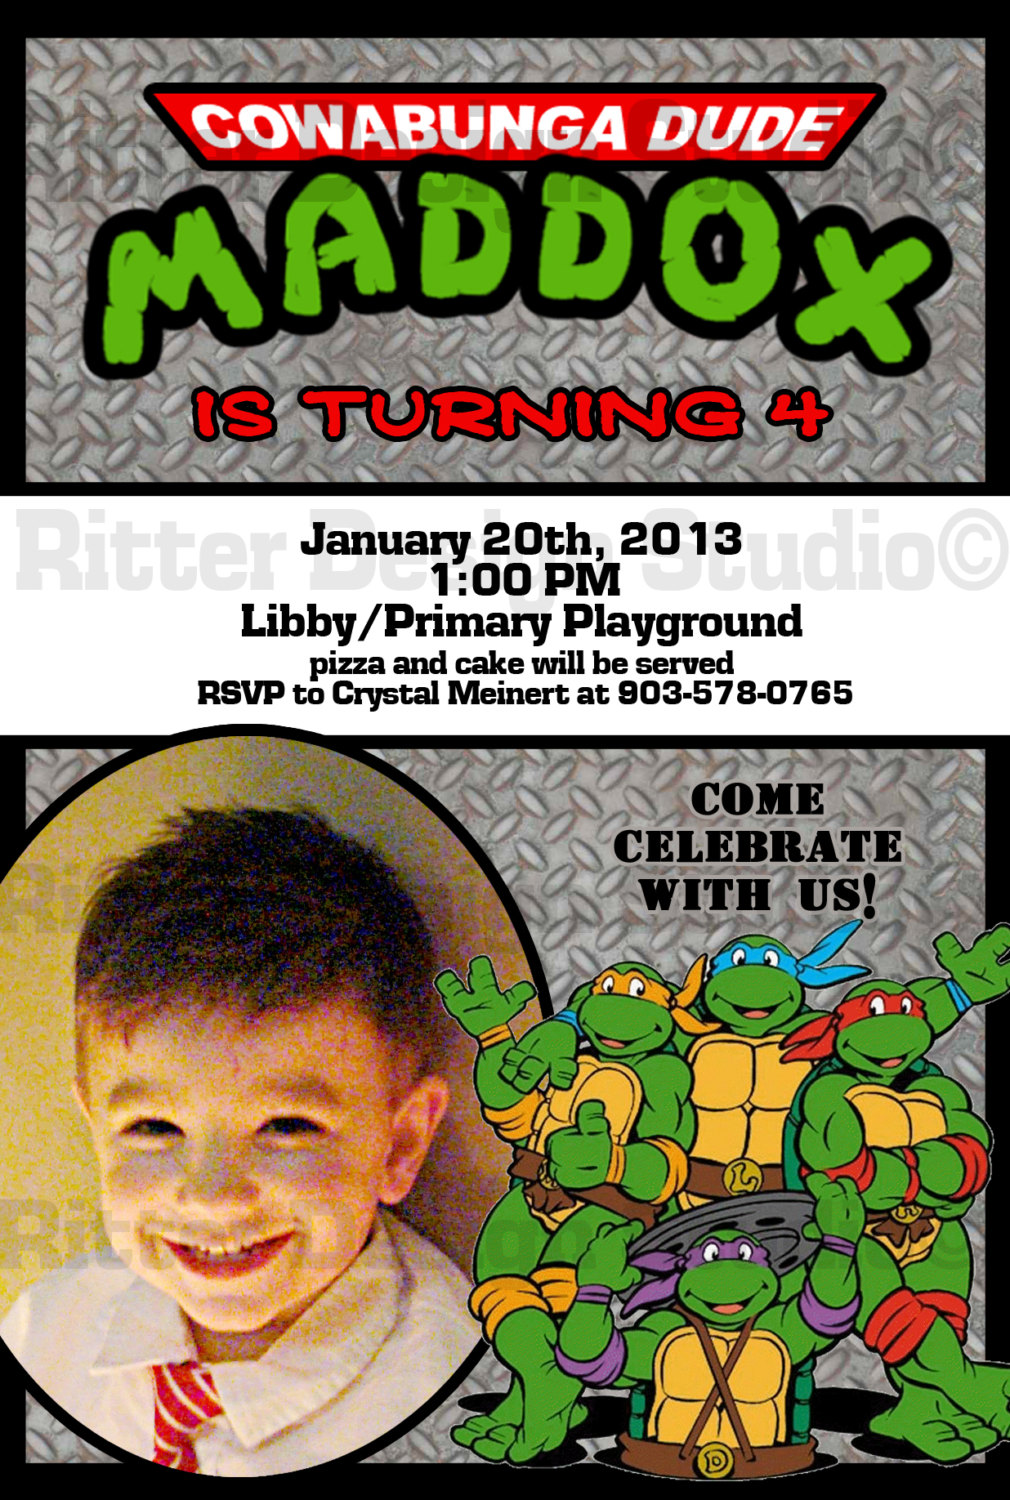 image regarding Ninja Turtles Birthday Invitations Printable identify Ninja Turtle Birthday Invitation - Printable